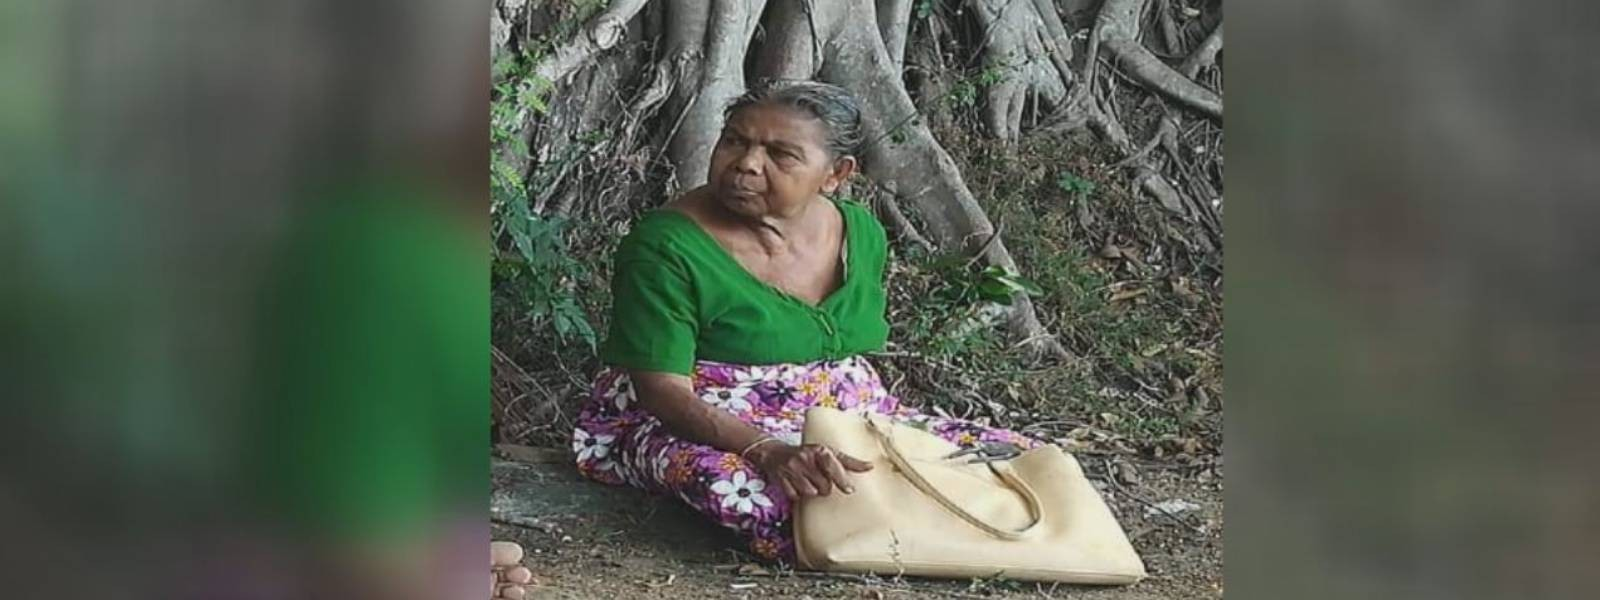 Veddah chief's wife passes away due to COVID-19